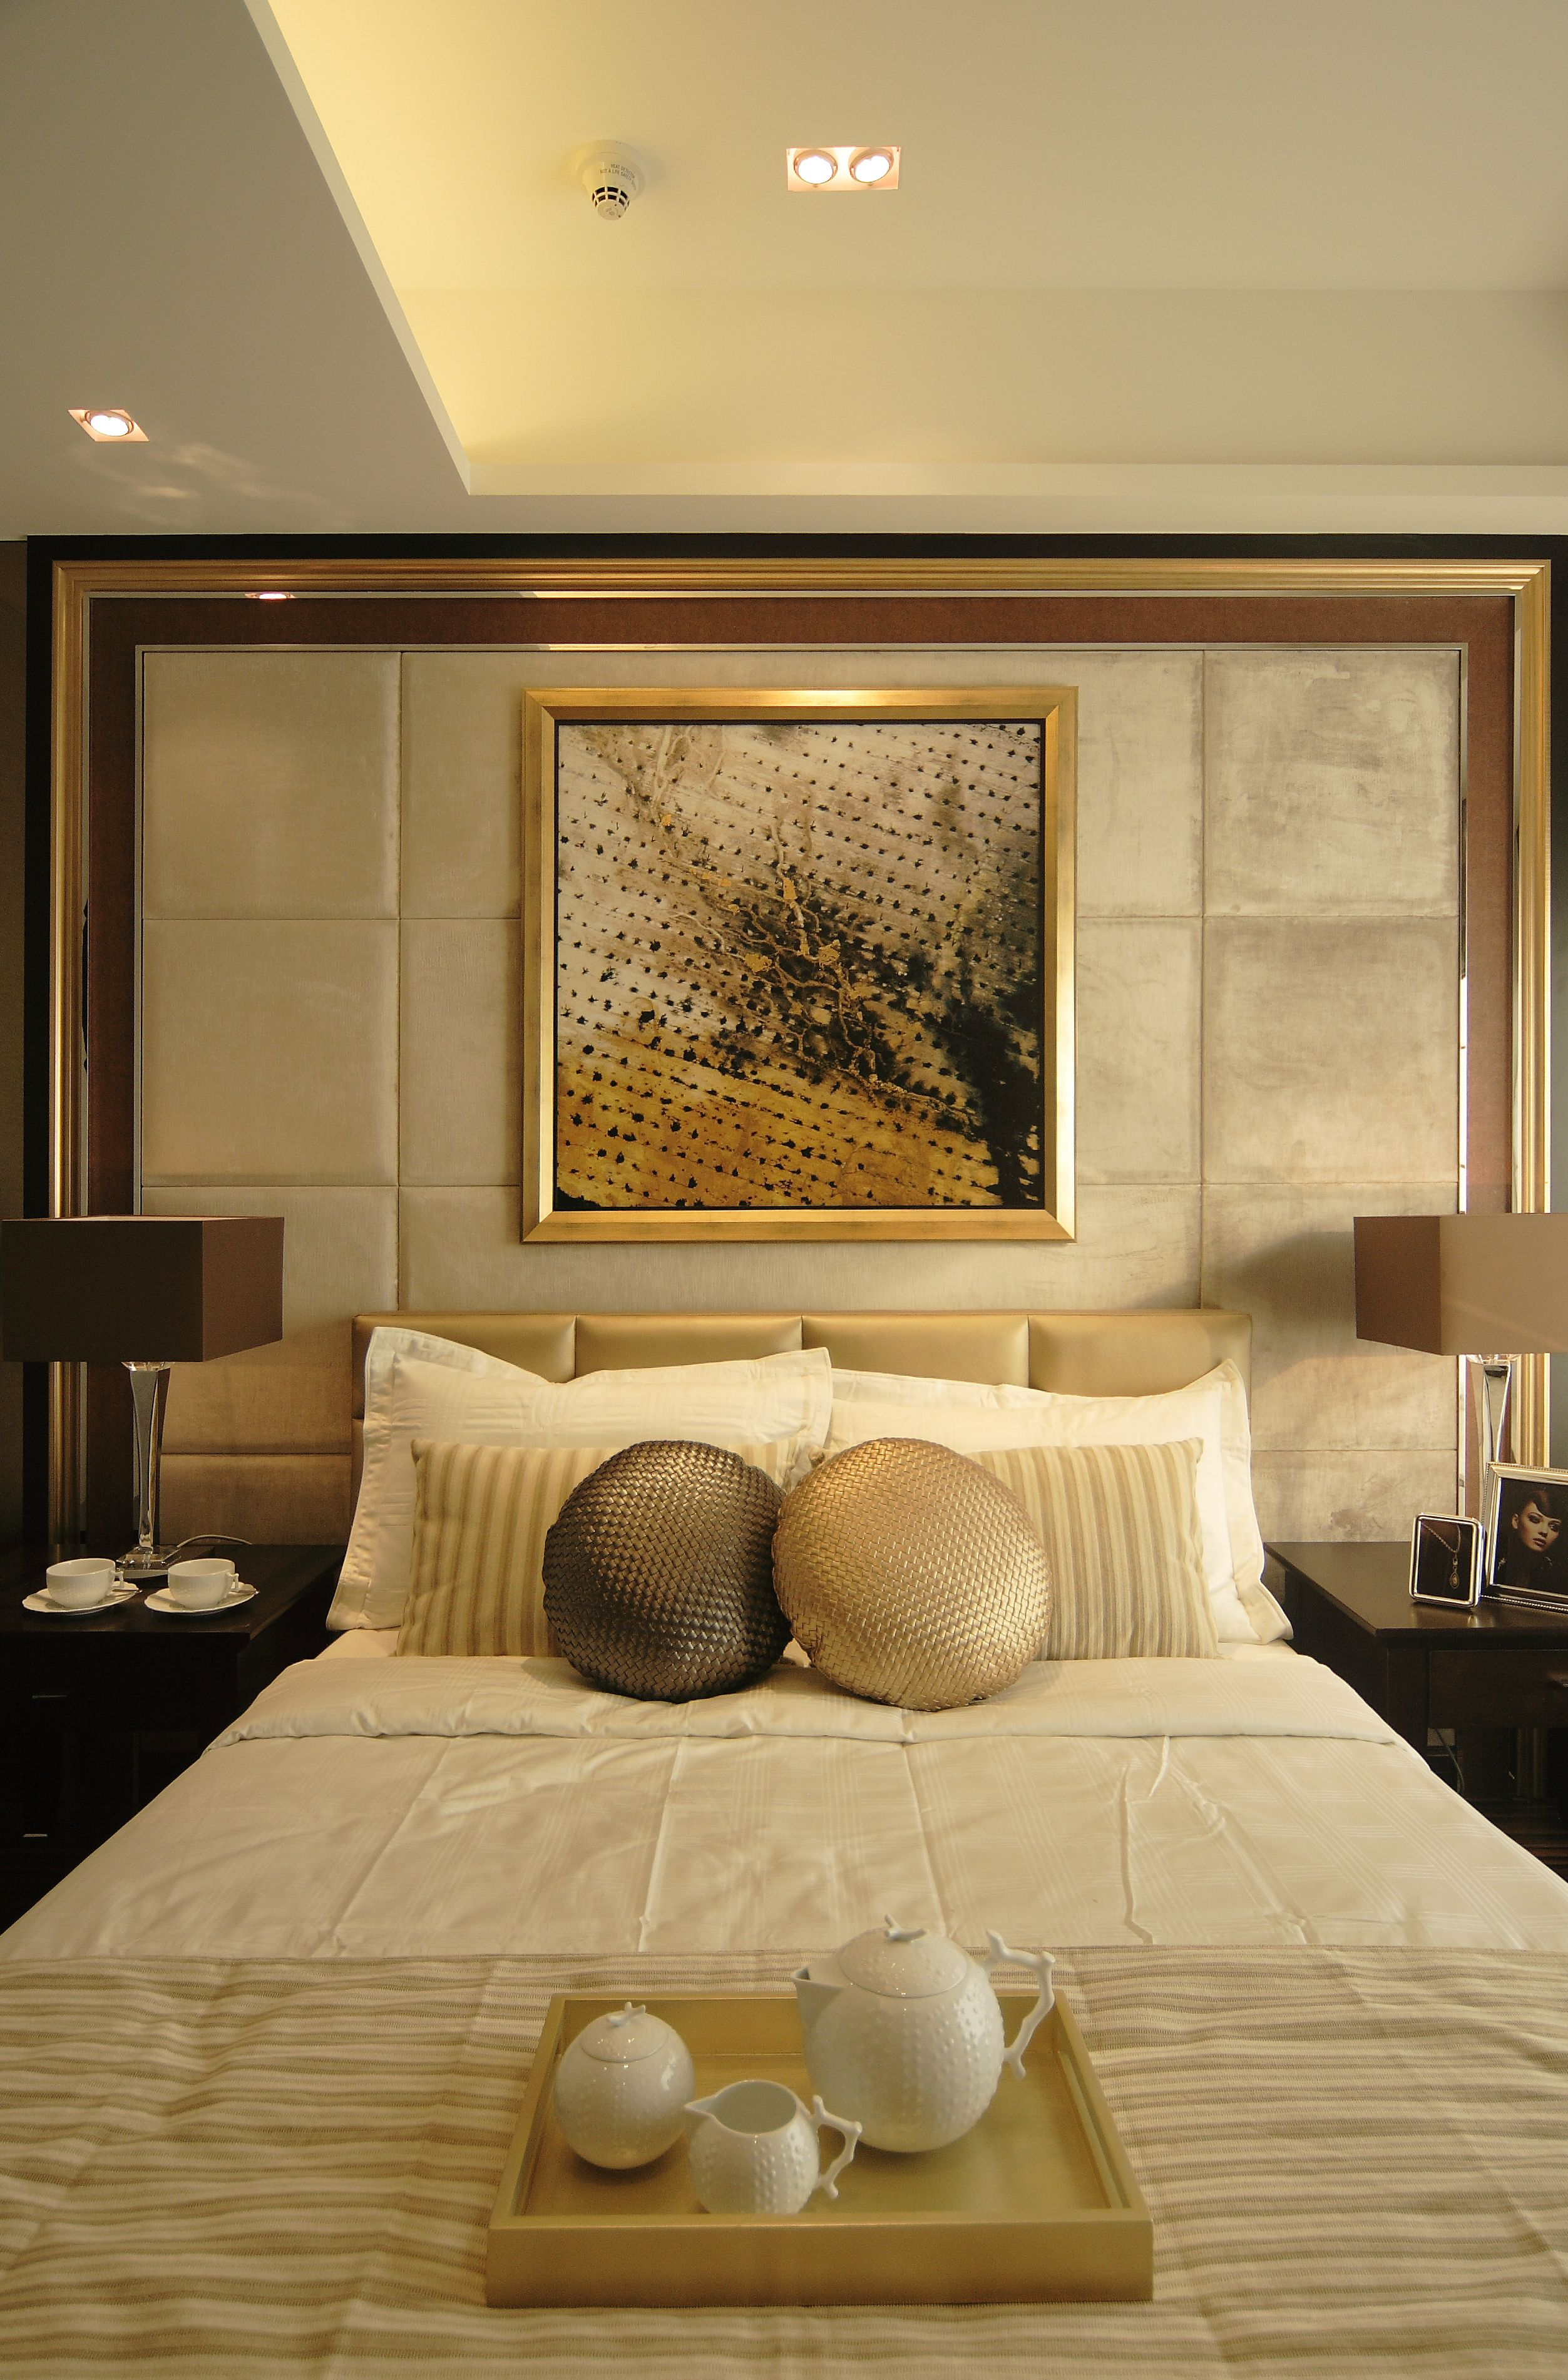 Pin by jessica anggada on bedroom luxury bedroom design for Diy hotel decor